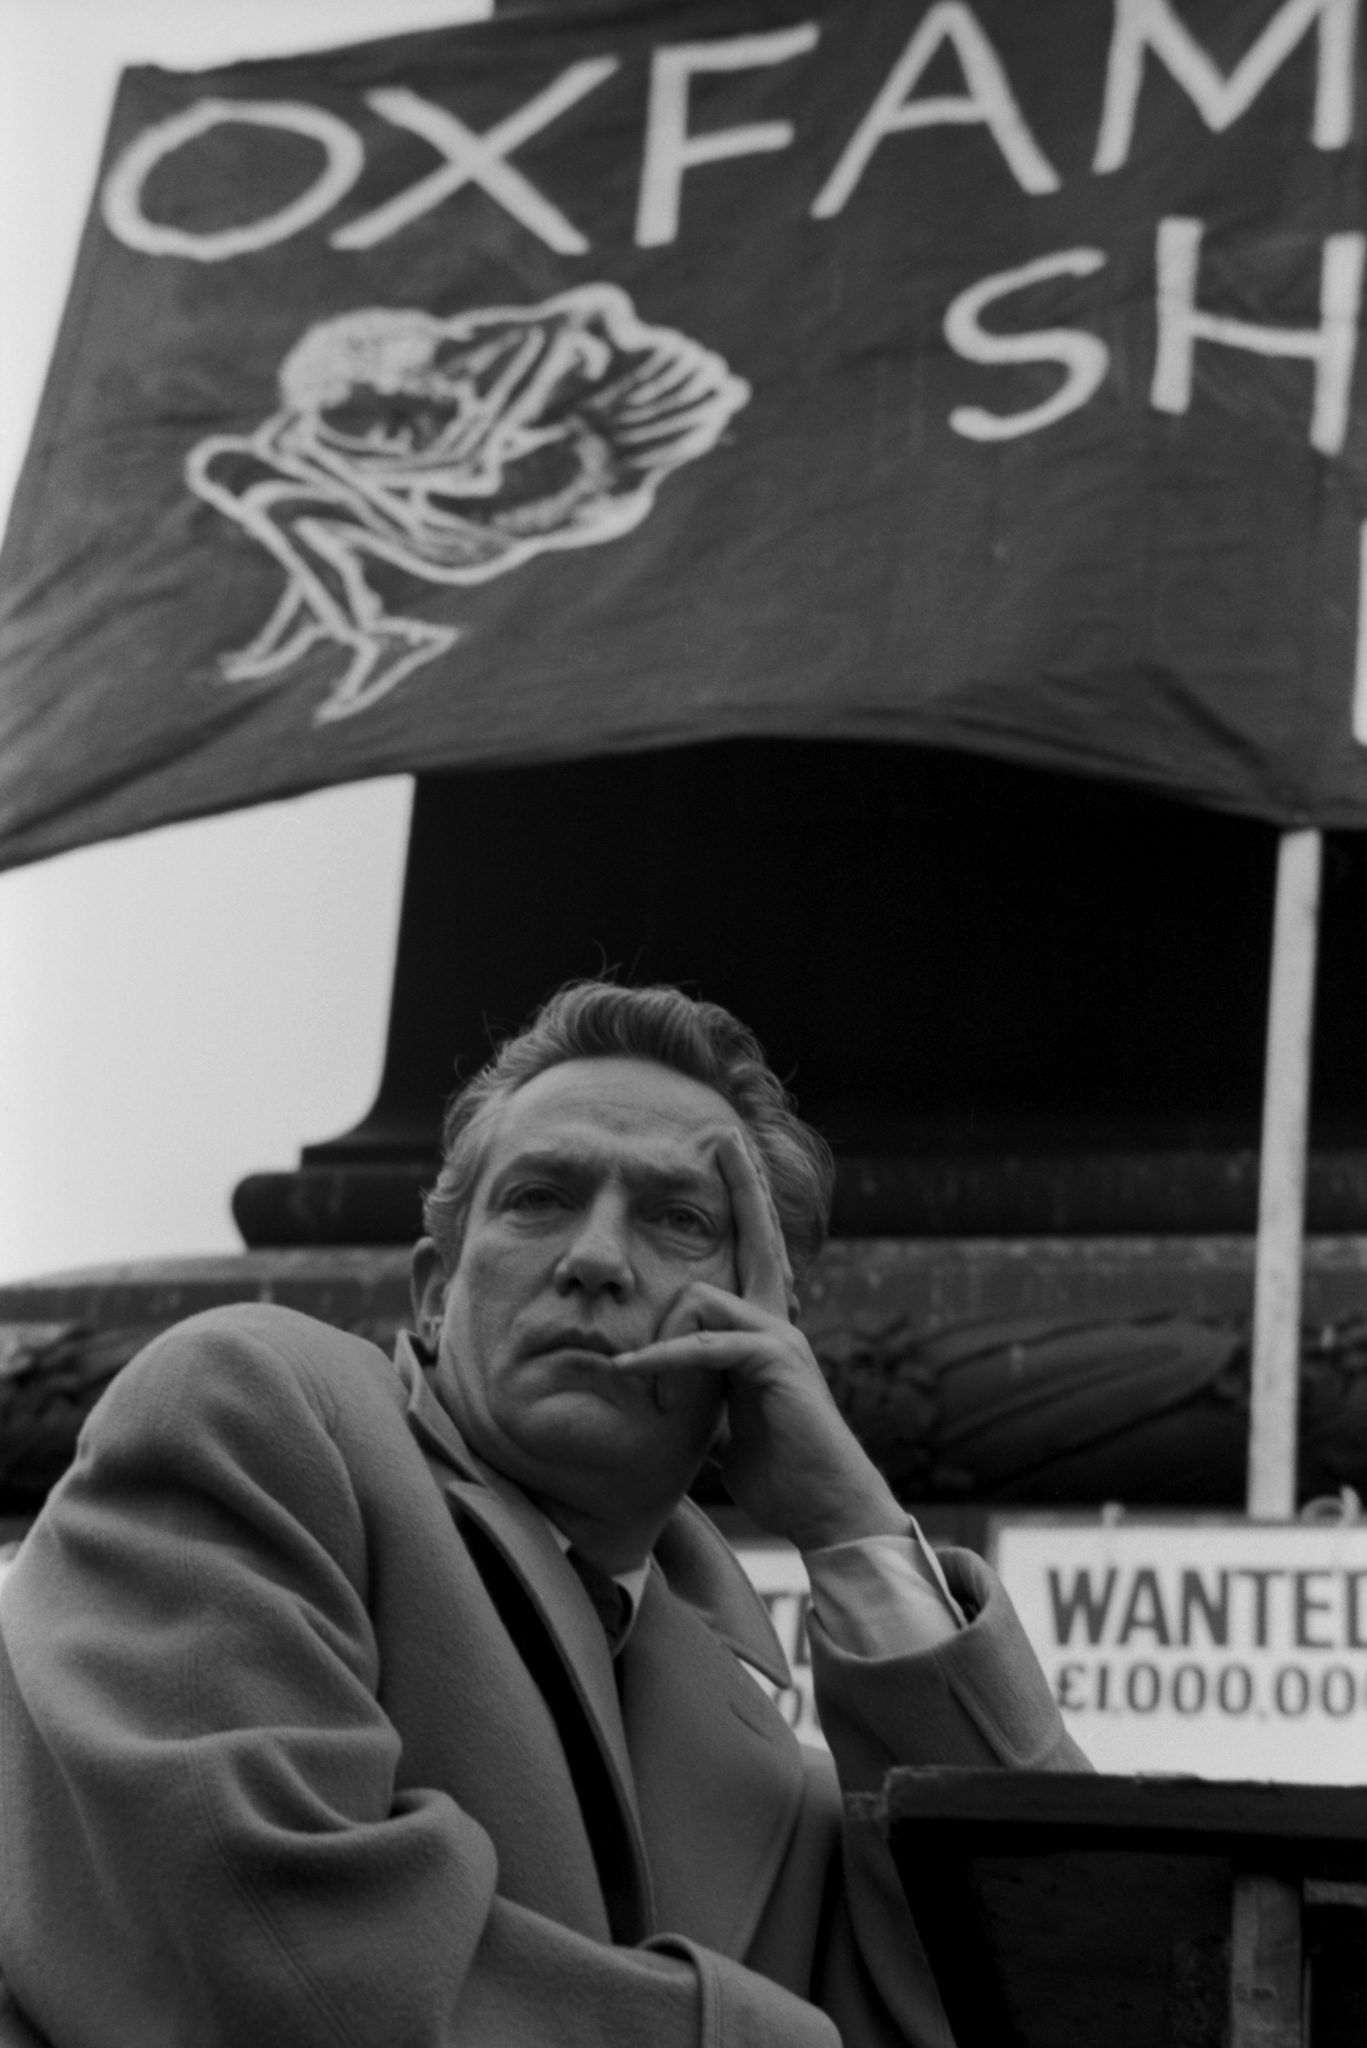 Peter Finch Campaigns For Oxfam